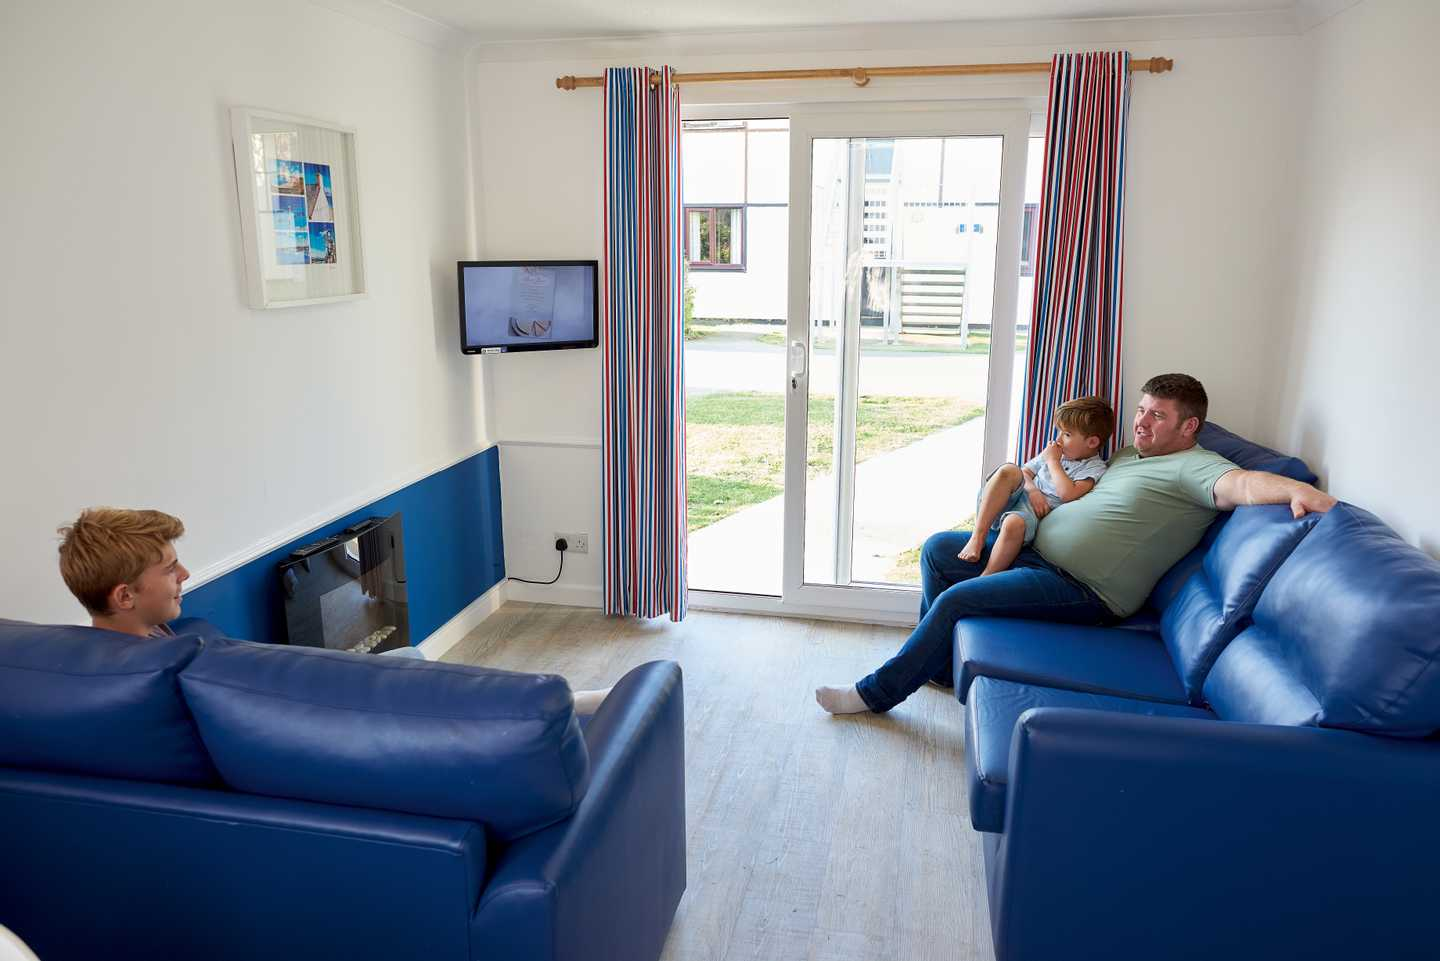 A family watching TV in a Comfort apartment with fireplace, blue sofas and sliding doors